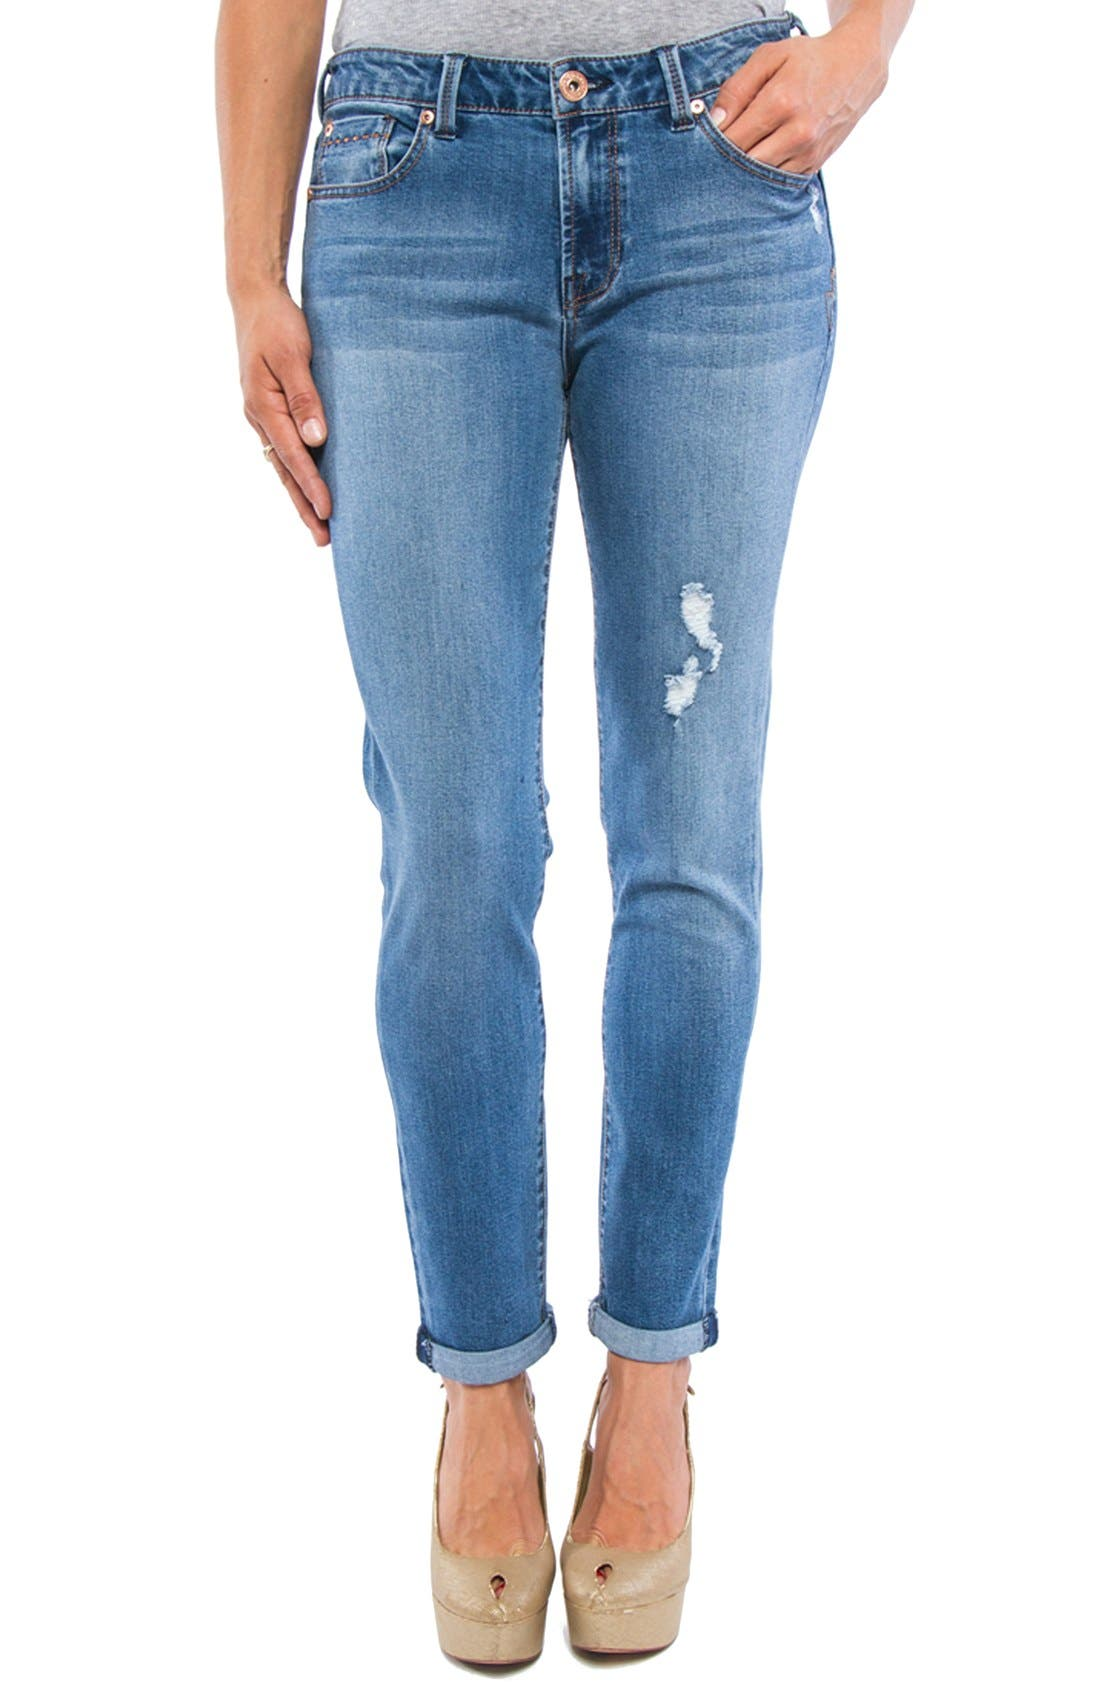 LIVERPOOL, Jeans Company 'Tory' Distressed Girlfriend Jeans, Main thumbnail 1, color, 401